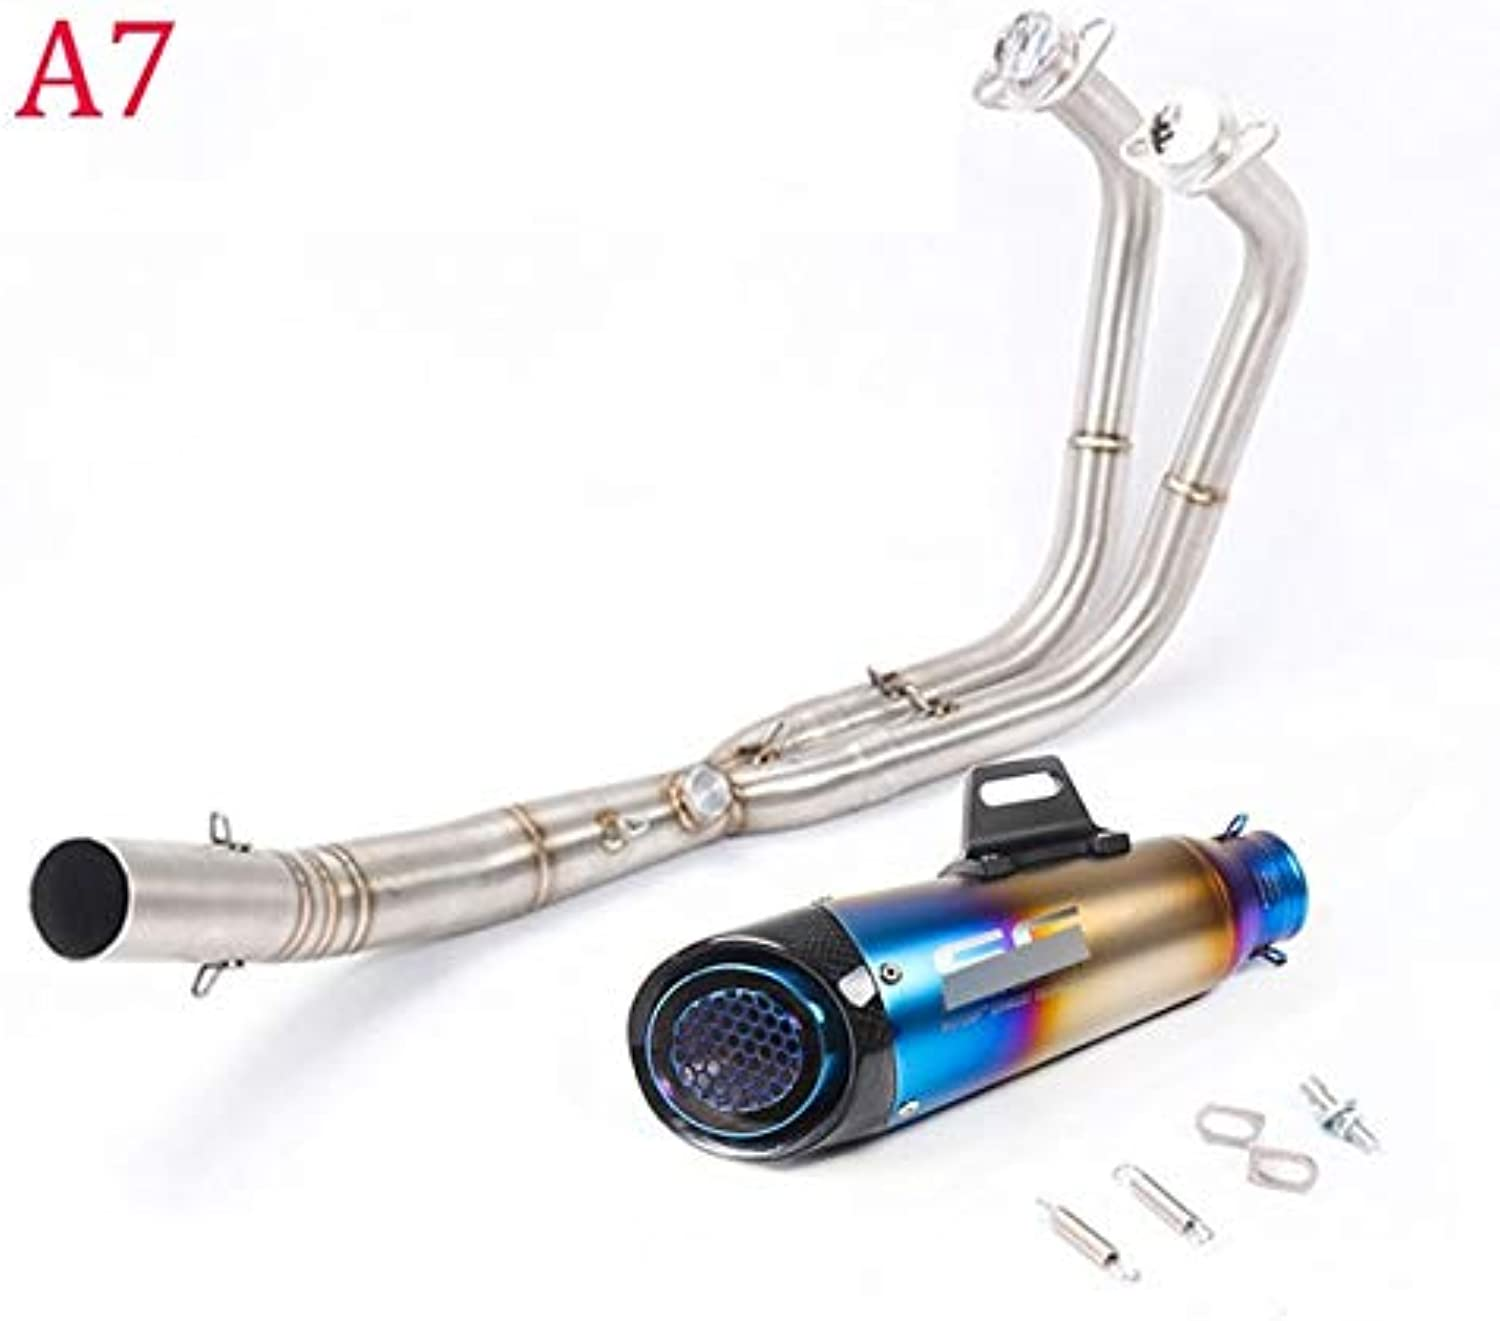 Fincos Slip on for Kawasaki Ninja 400 Full Exhaust System Muffler with Front Middle Connection Link Pipe Carbon Fiber+Stainless Steel